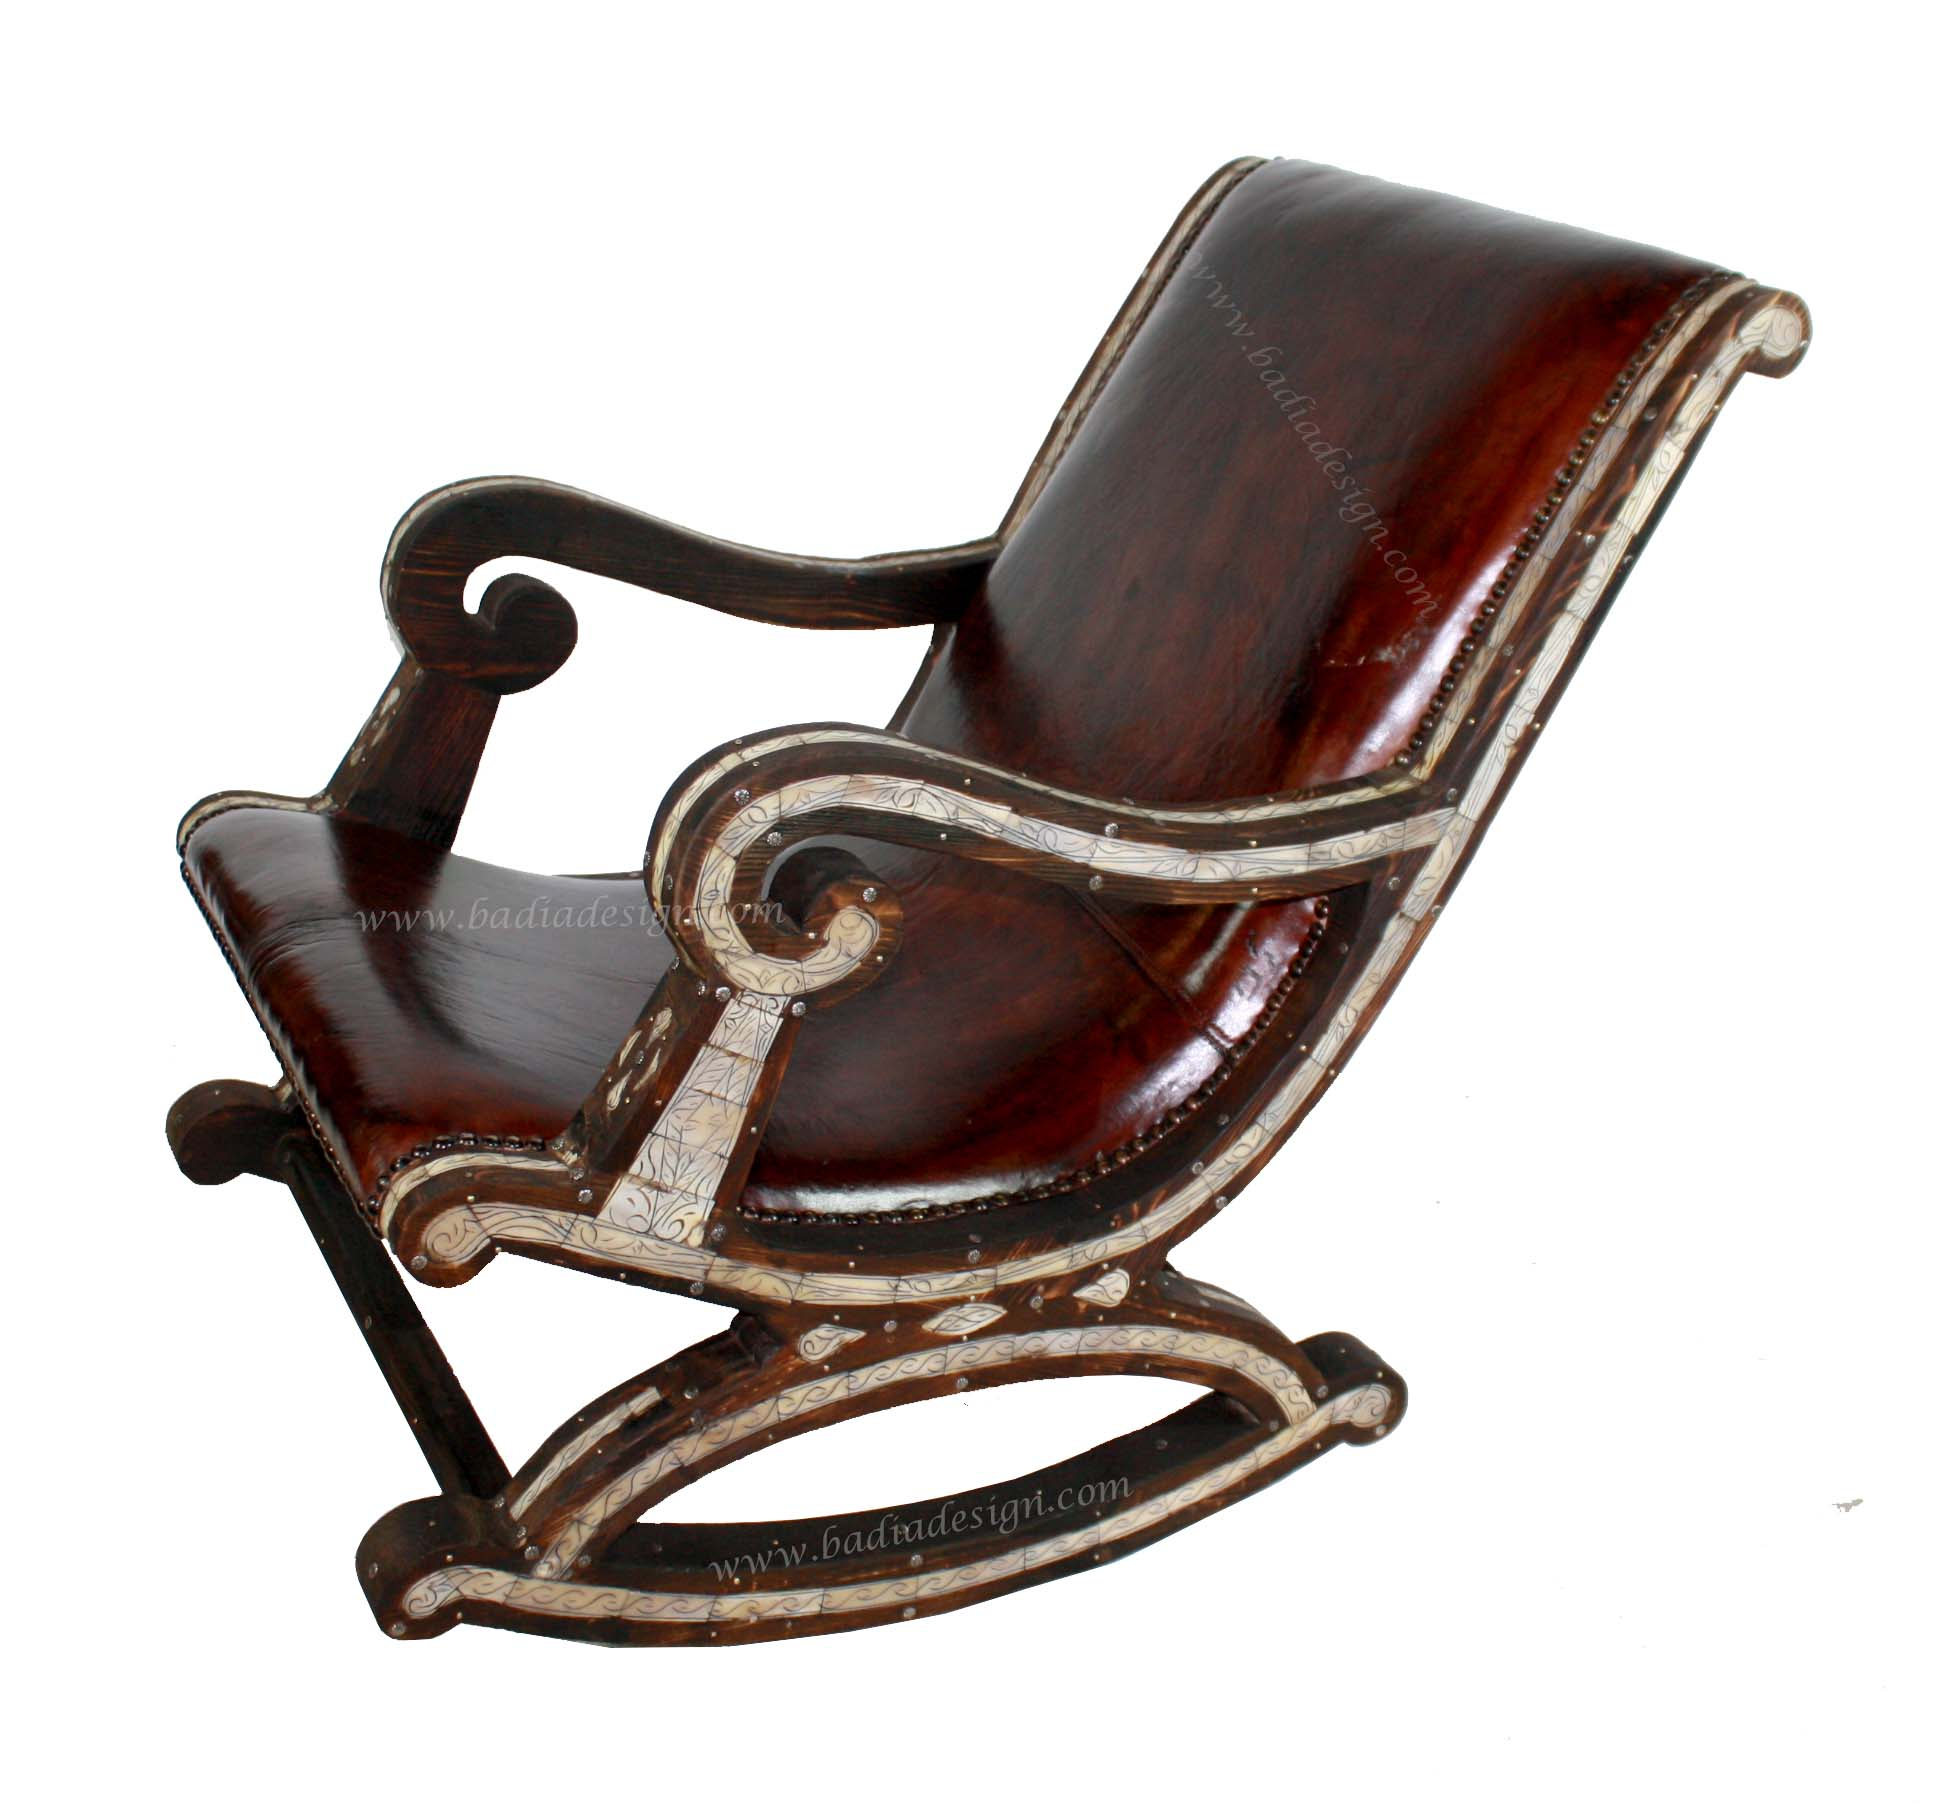 Moroccan Leather Chair with Metal and Bone from Badia Design Inc